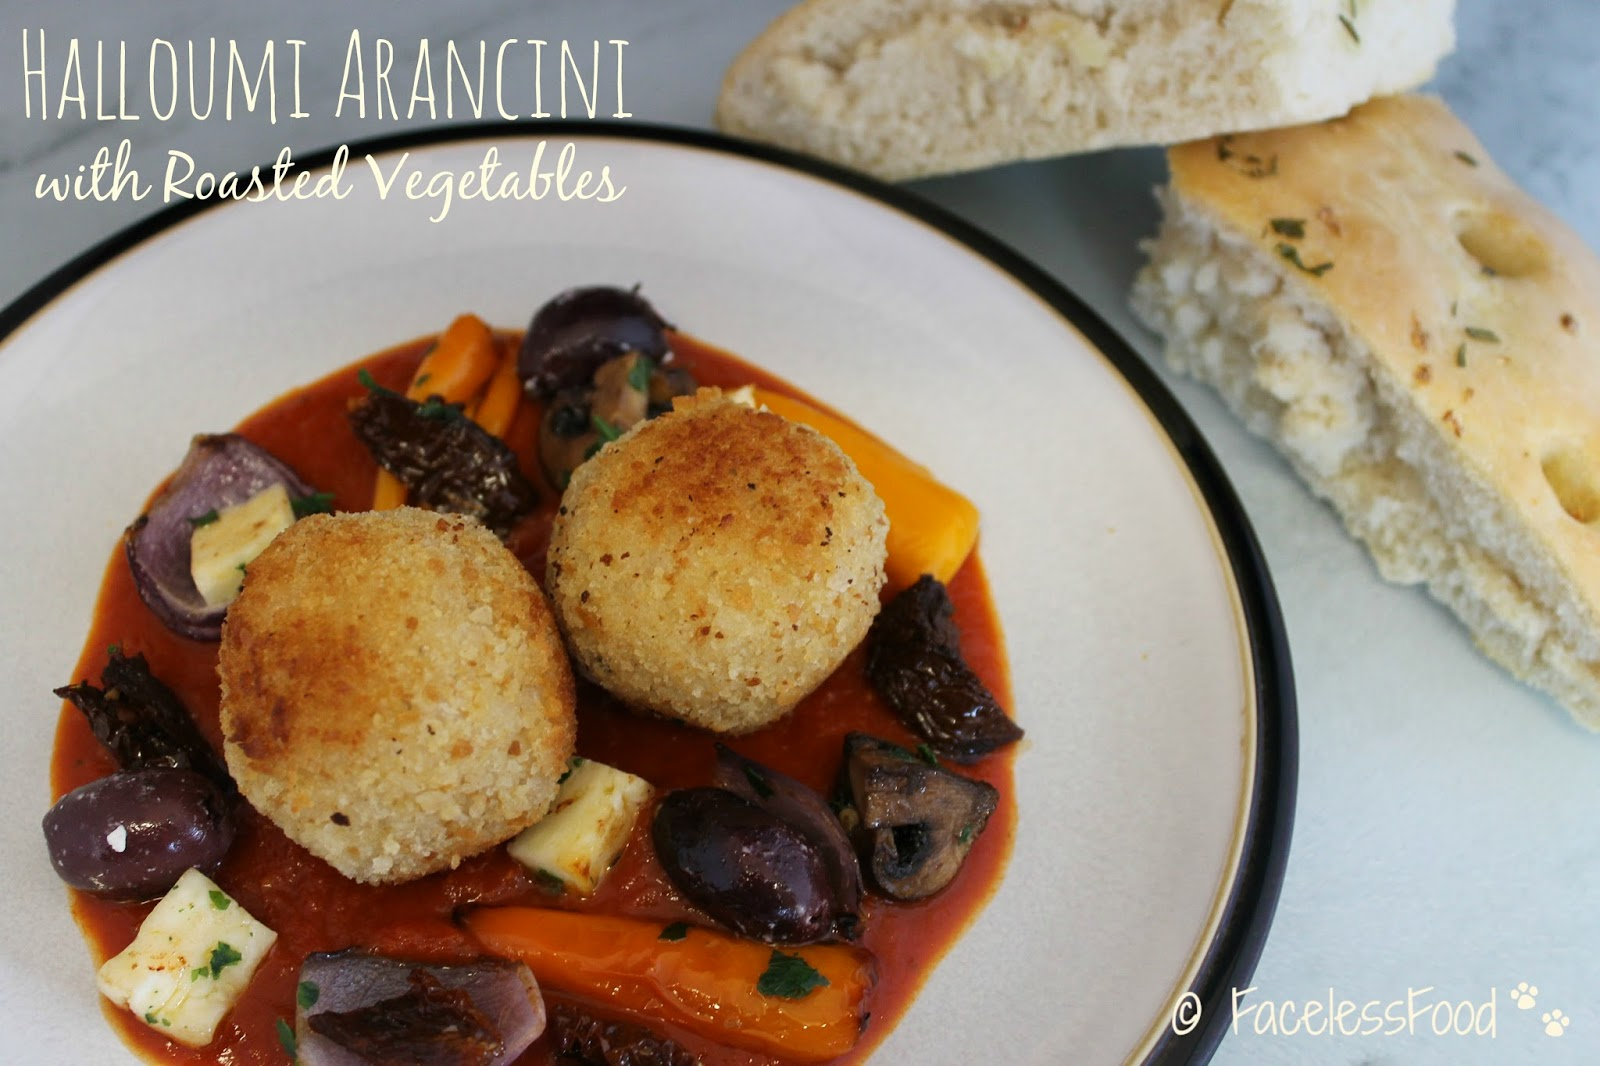 Halloumi Arancini with Roasted Vegetables